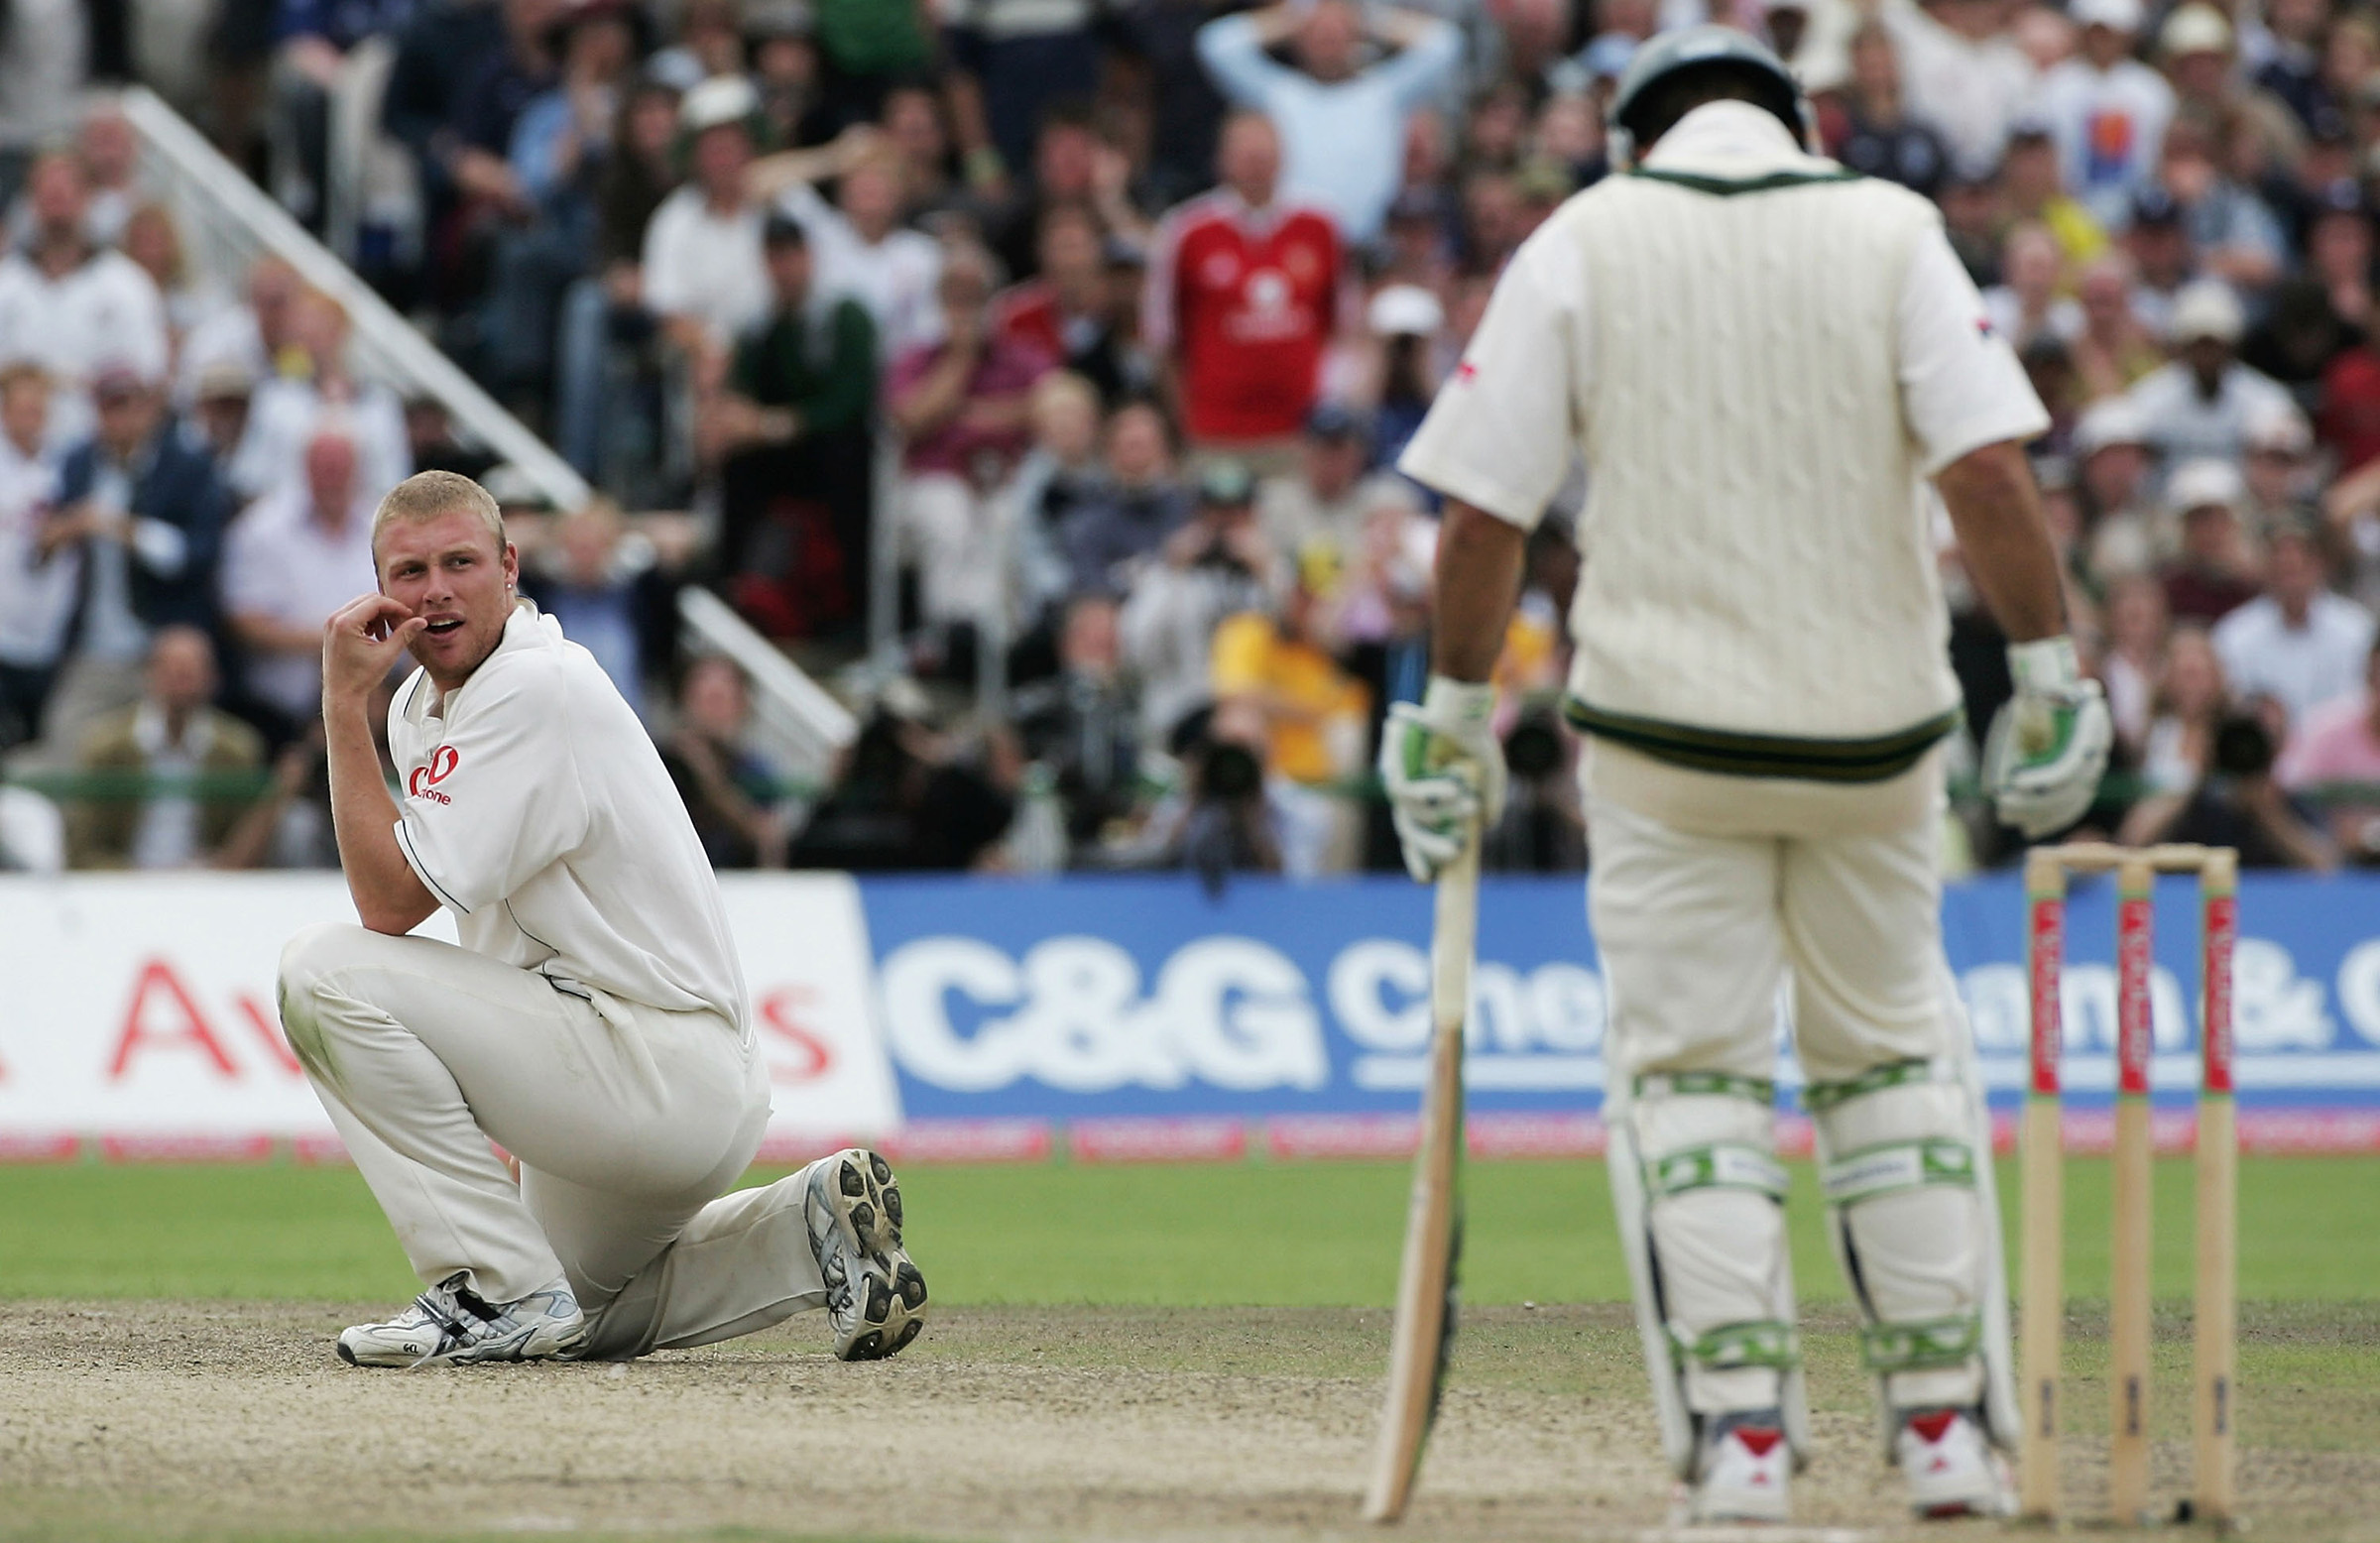 Flintoff ponders how to remove Australia's skipper // Getty